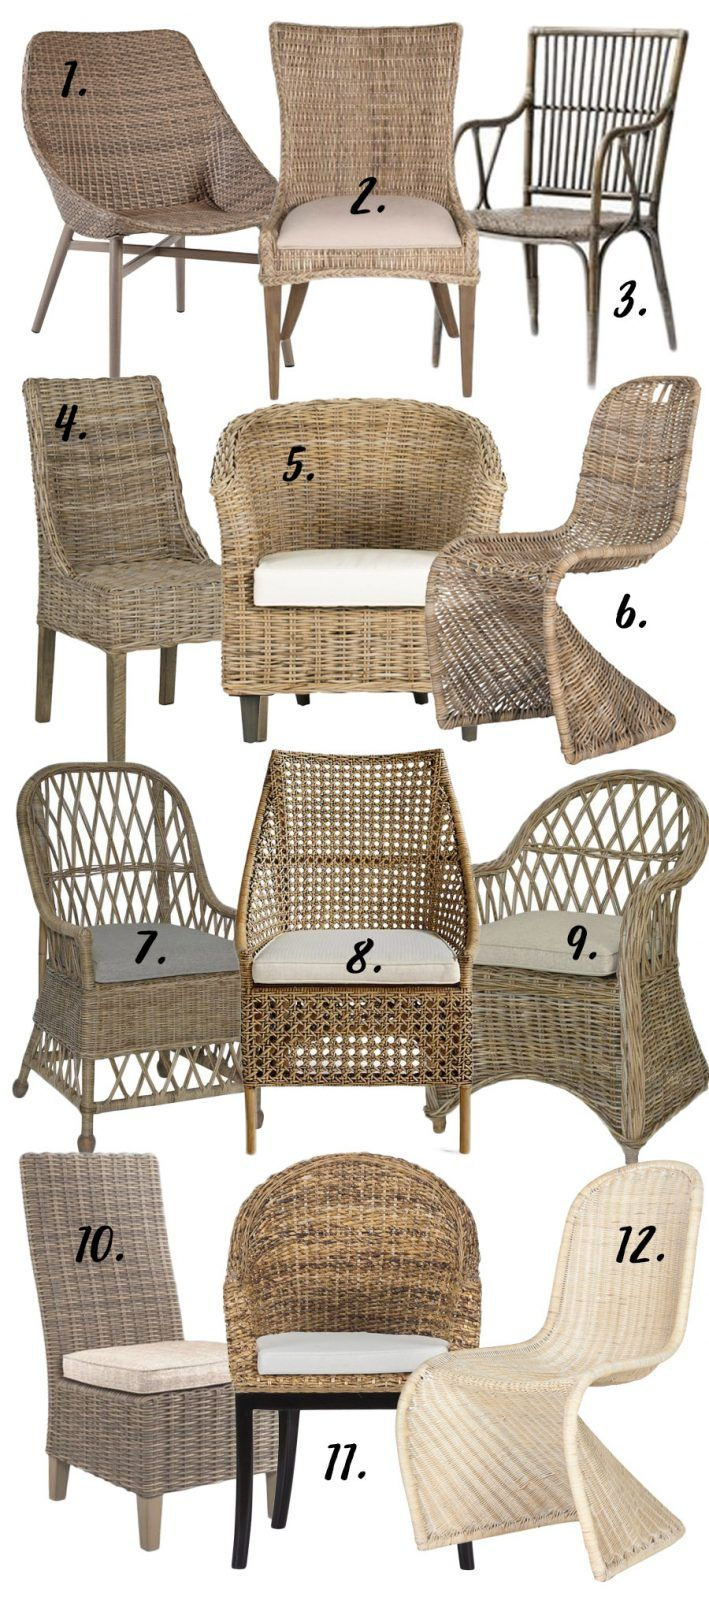 Wicker Dining Chairs, Wicker Rattan Dining Room Chairs